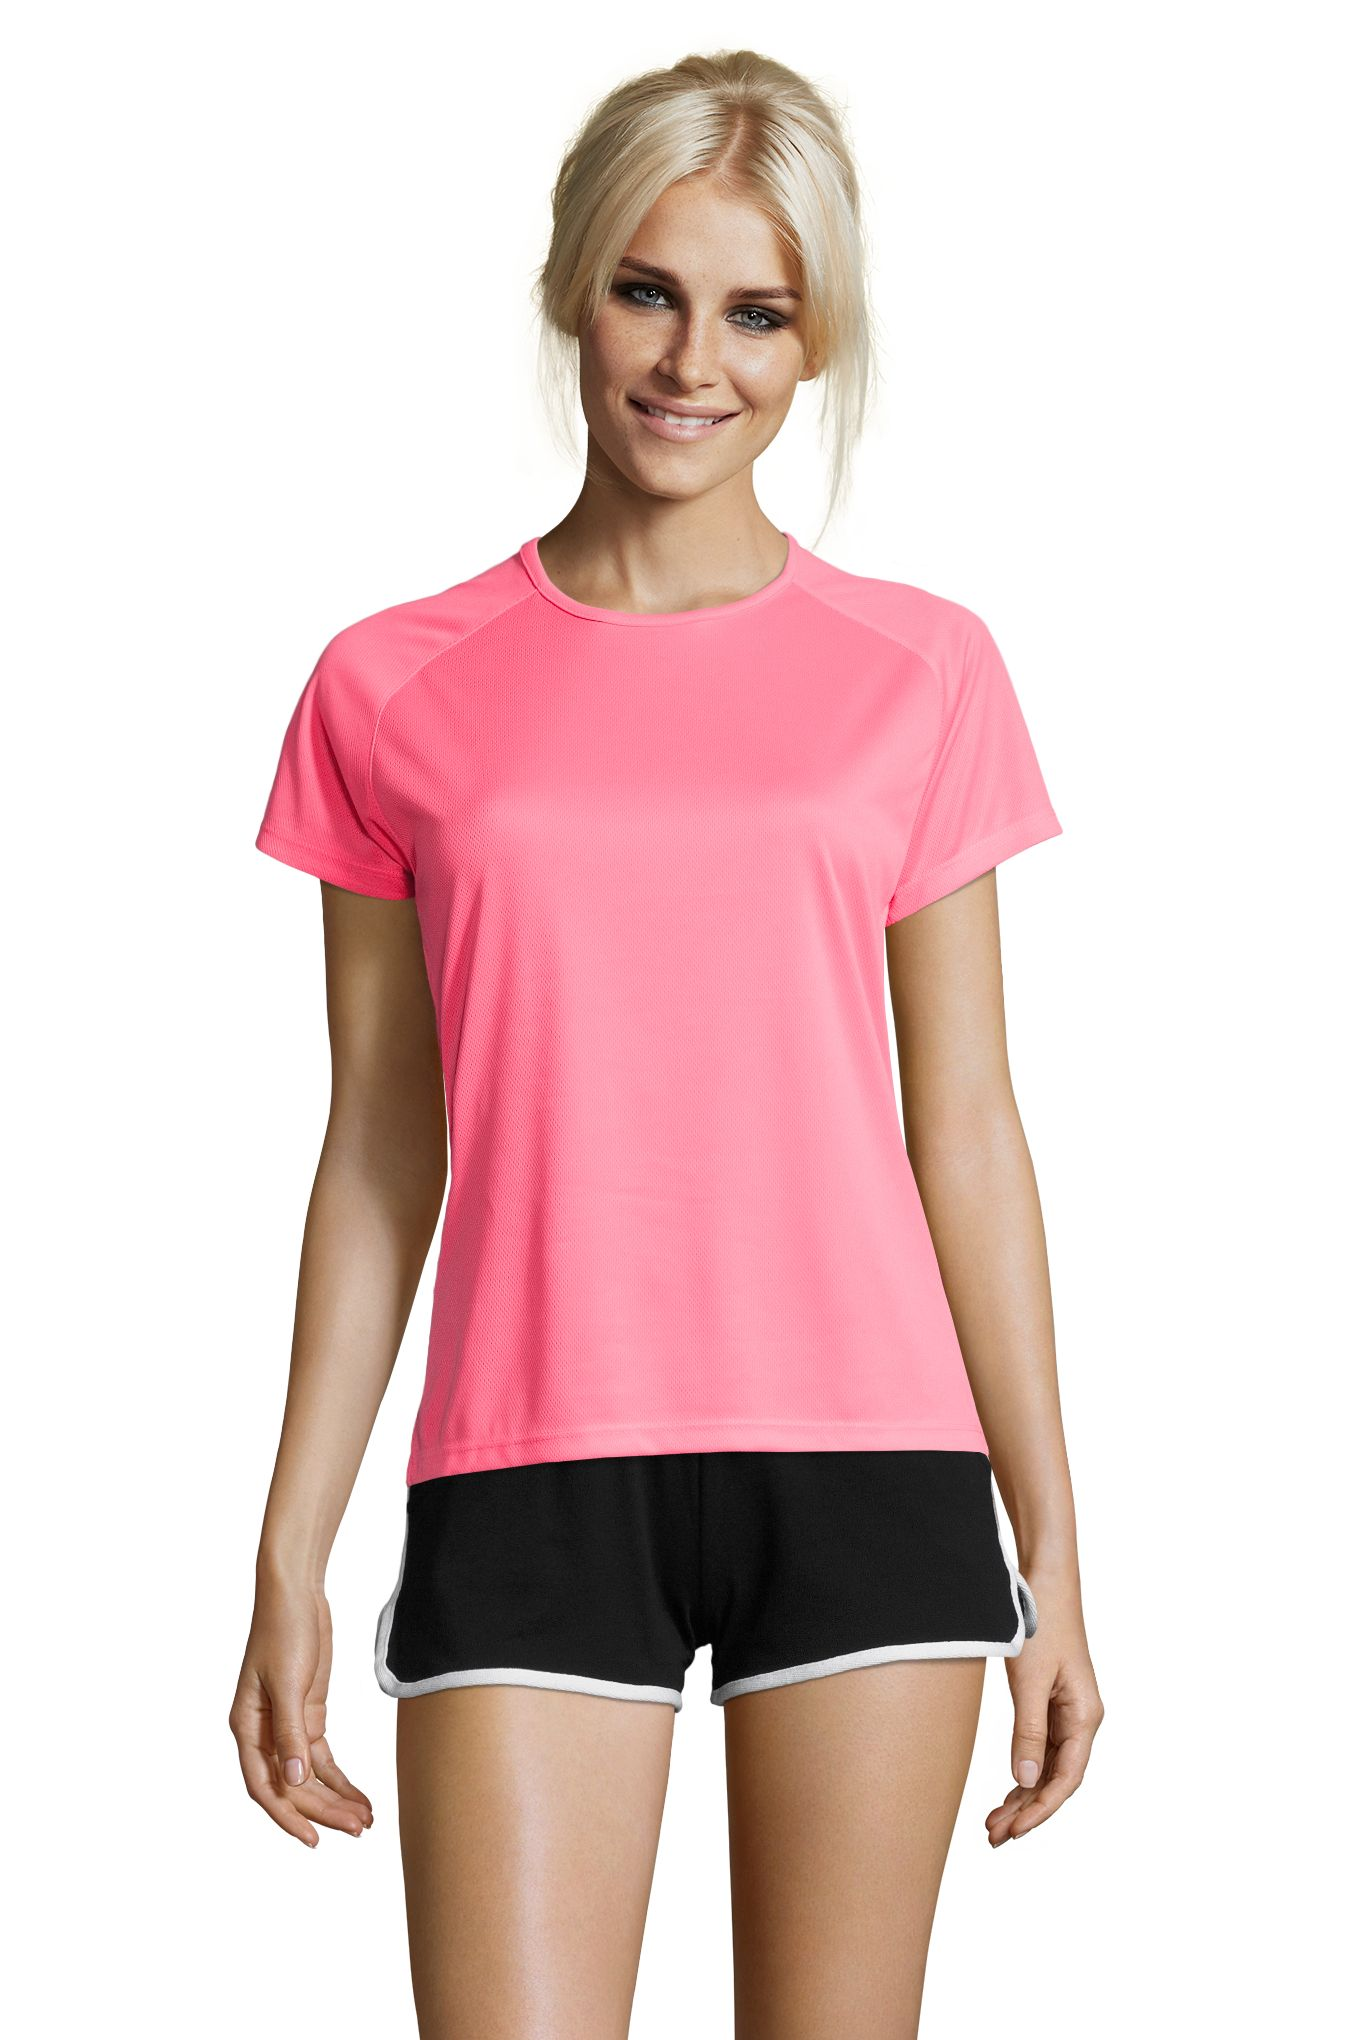 129 - Neon pink 2